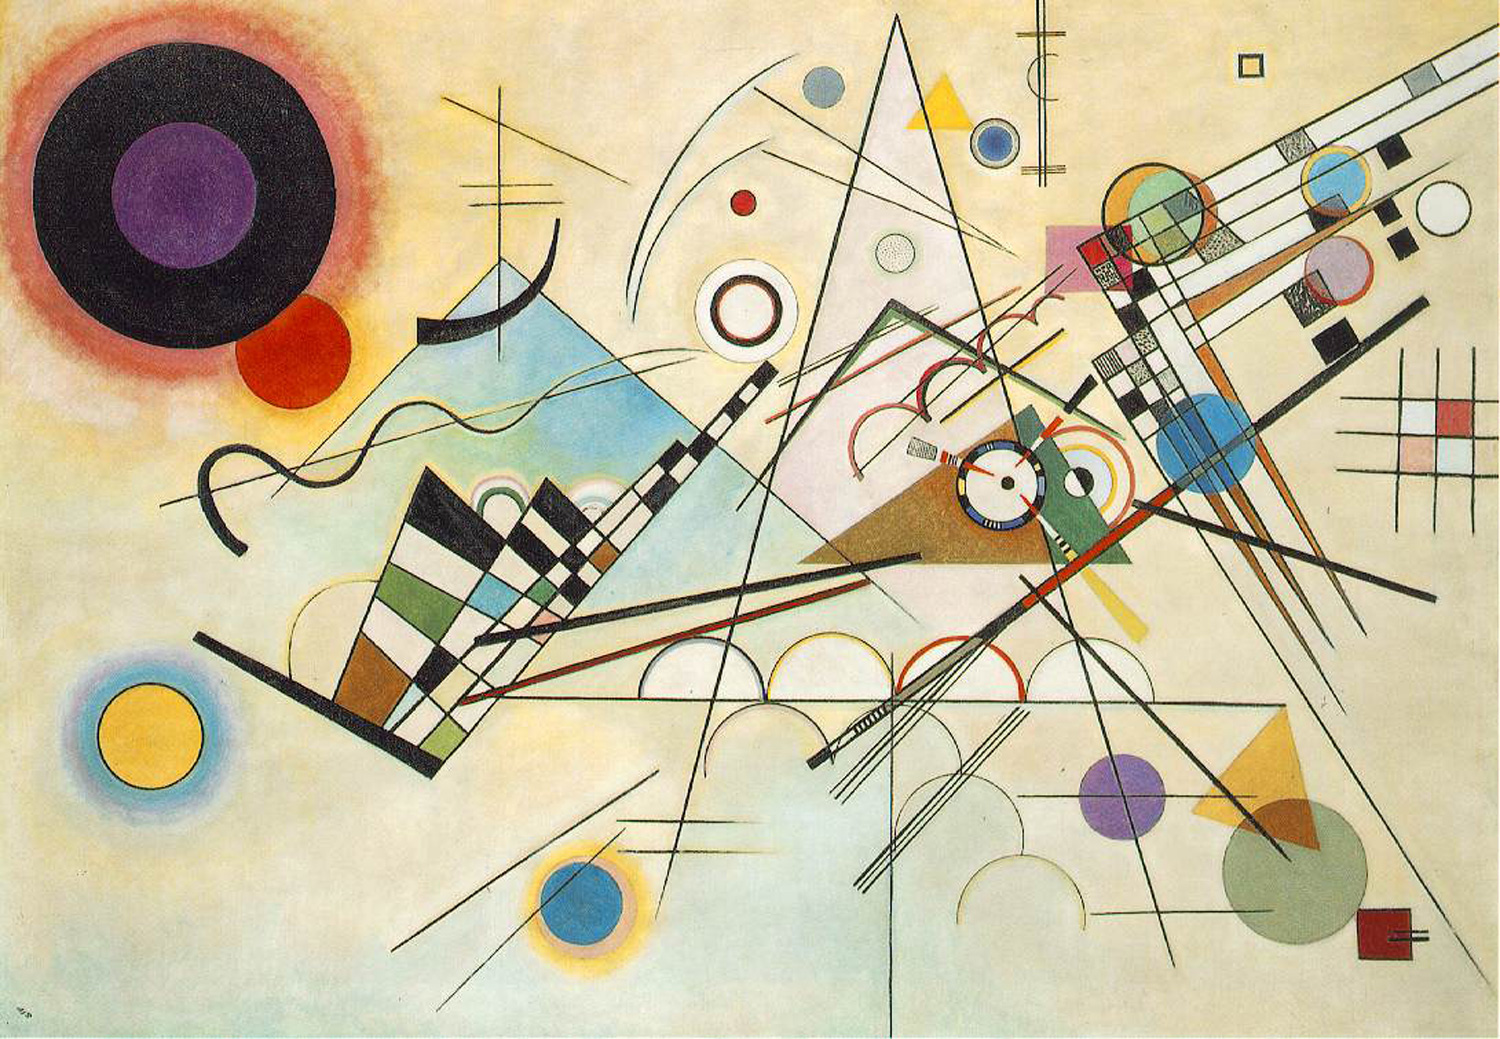 Image: A painting by Wassily Kandinsky courtesy of Wikimedia Commons